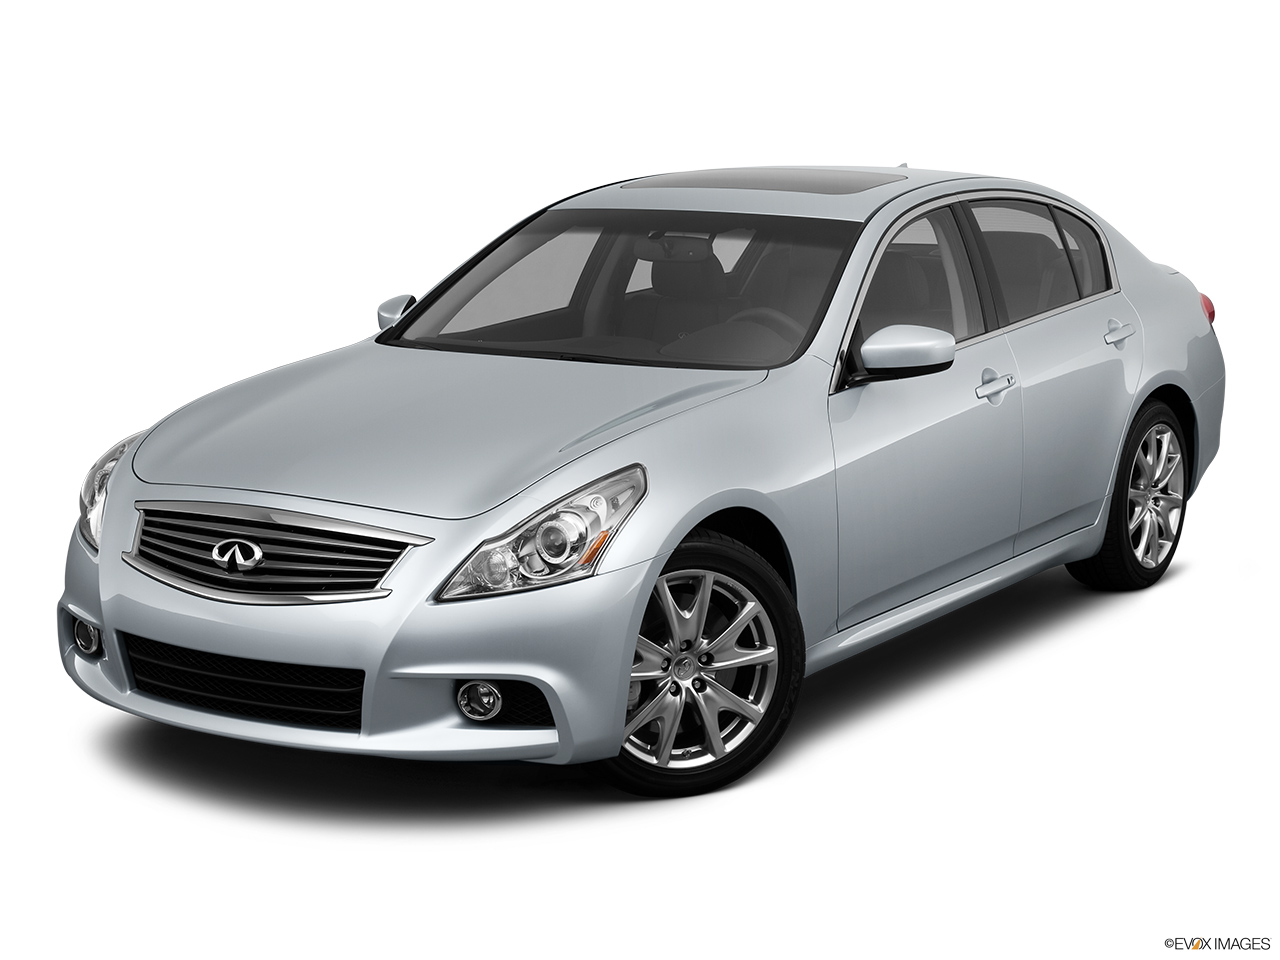 2013 infiniti g37 sedan journey rwd. Black Bedroom Furniture Sets. Home Design Ideas